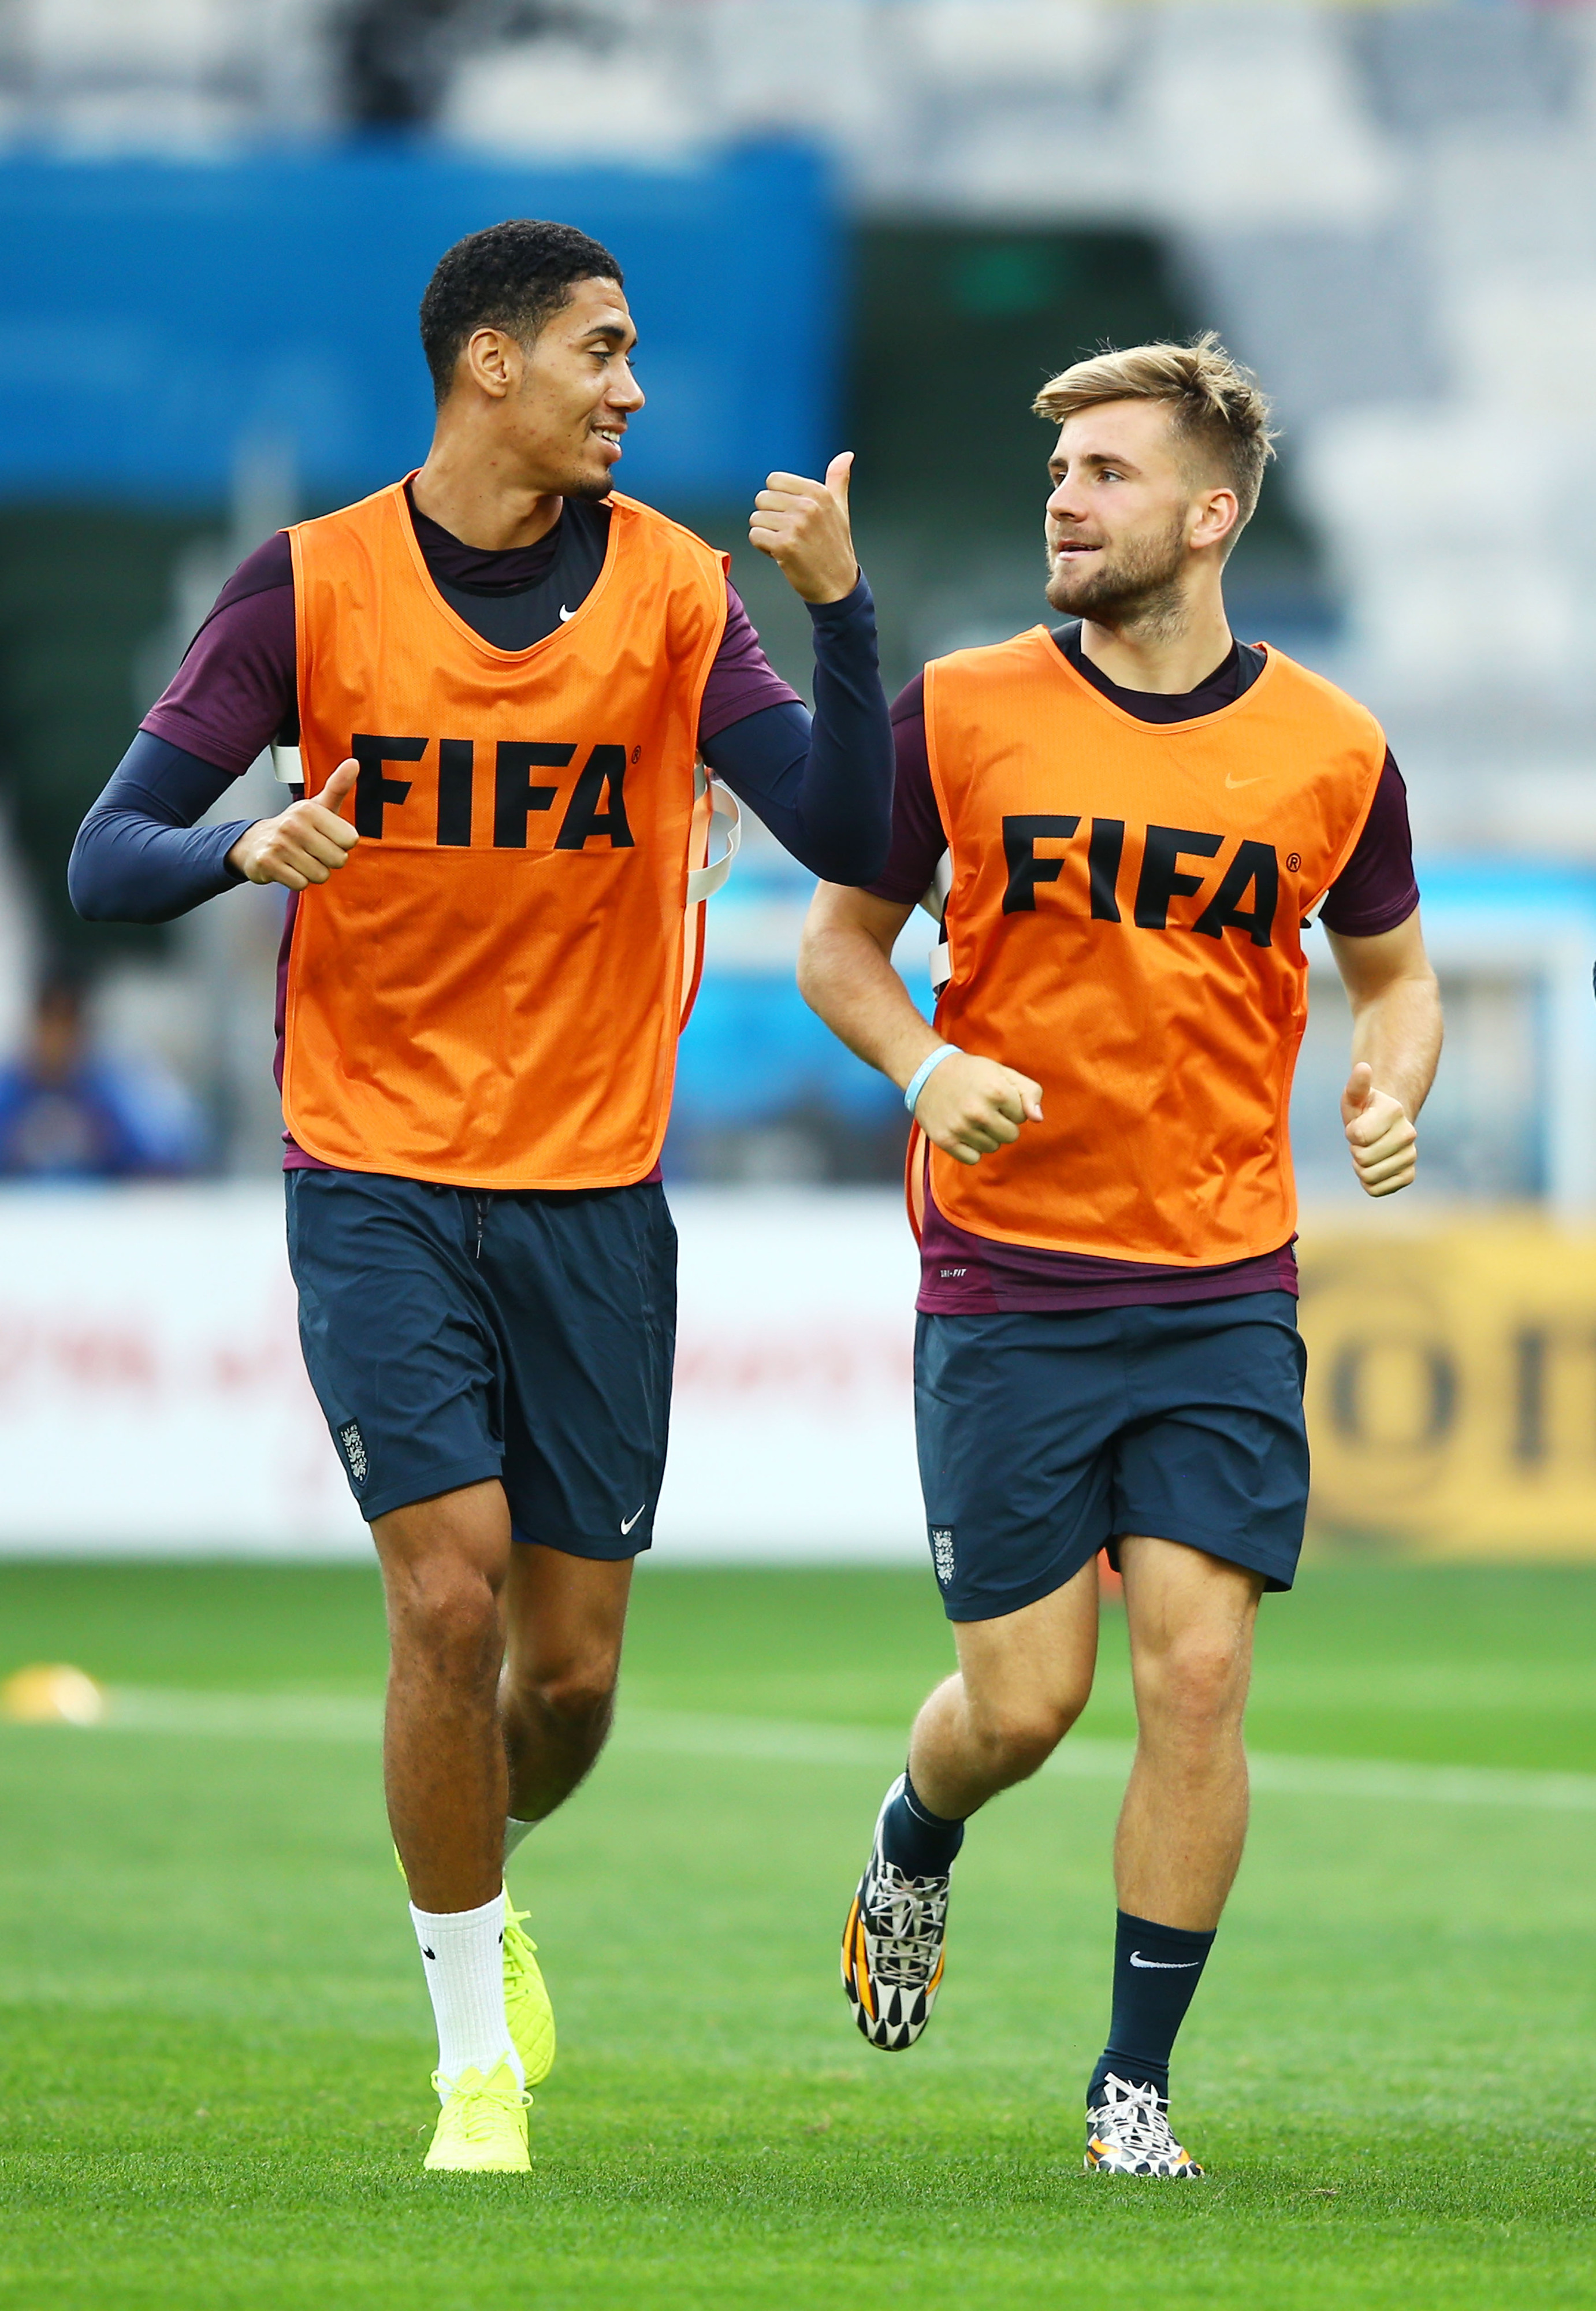 Smalling and Shaw are set to make their World Cup debut against Costa Rica later tonight. Photo credit